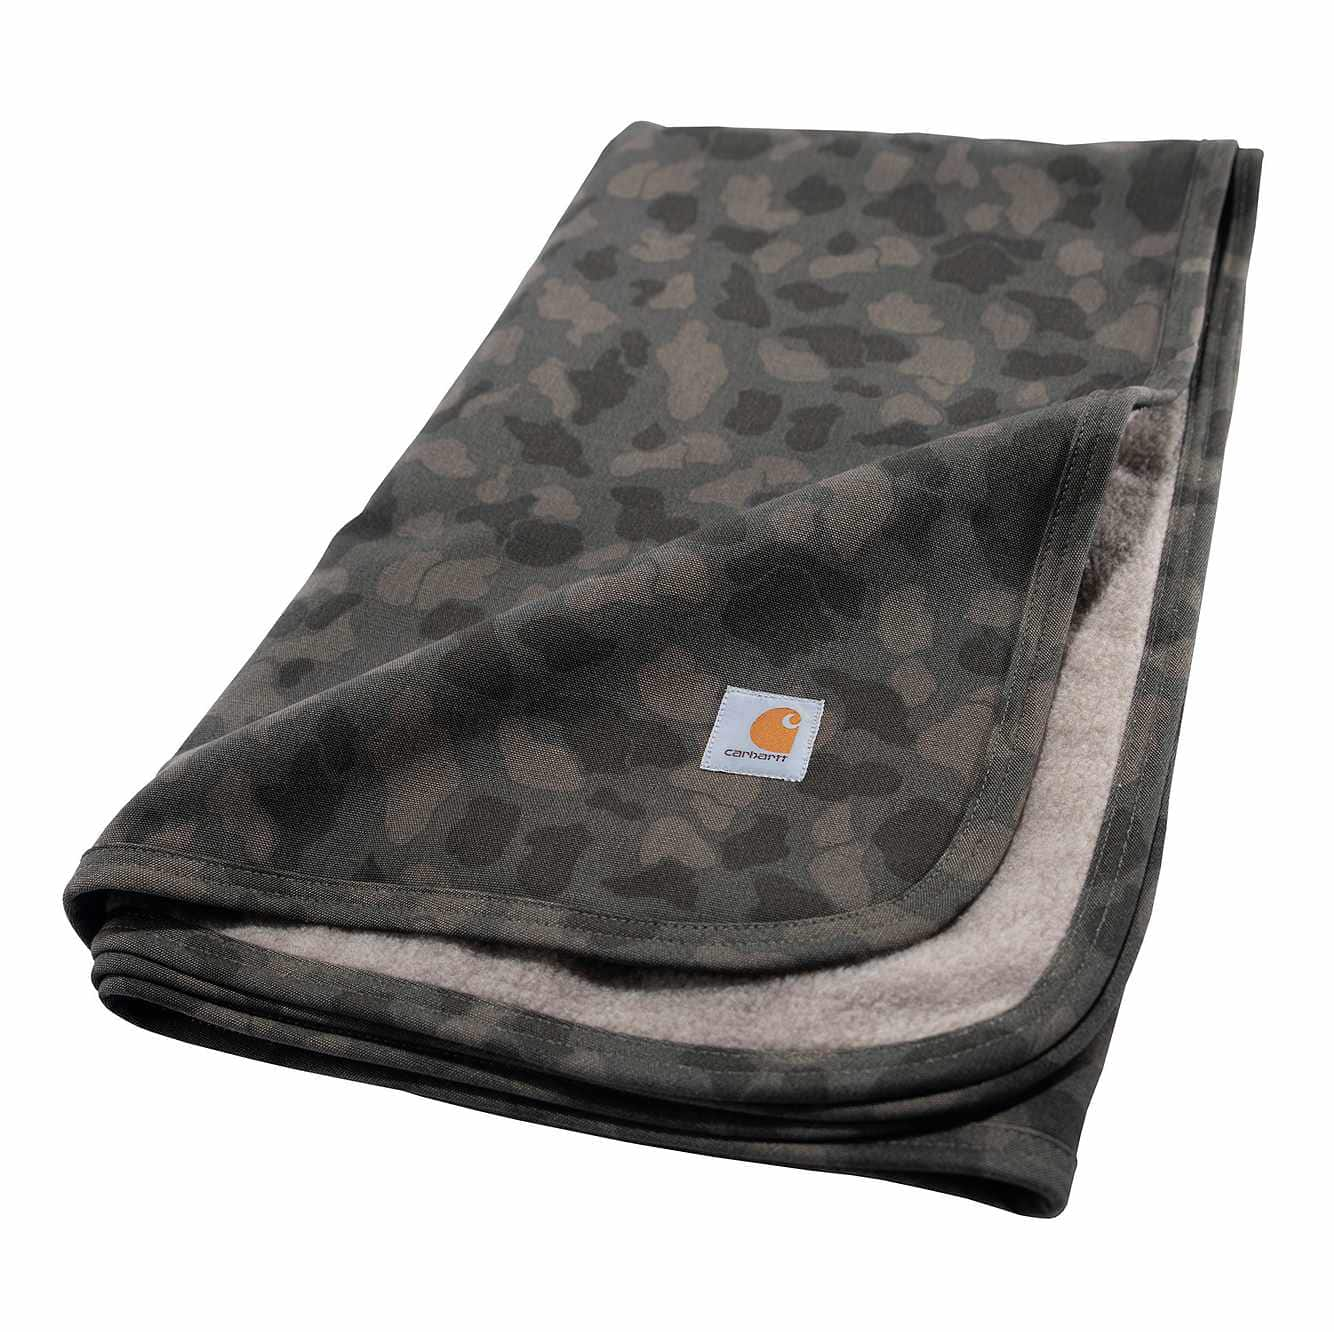 Picture of Carhartt Blanket in Camo